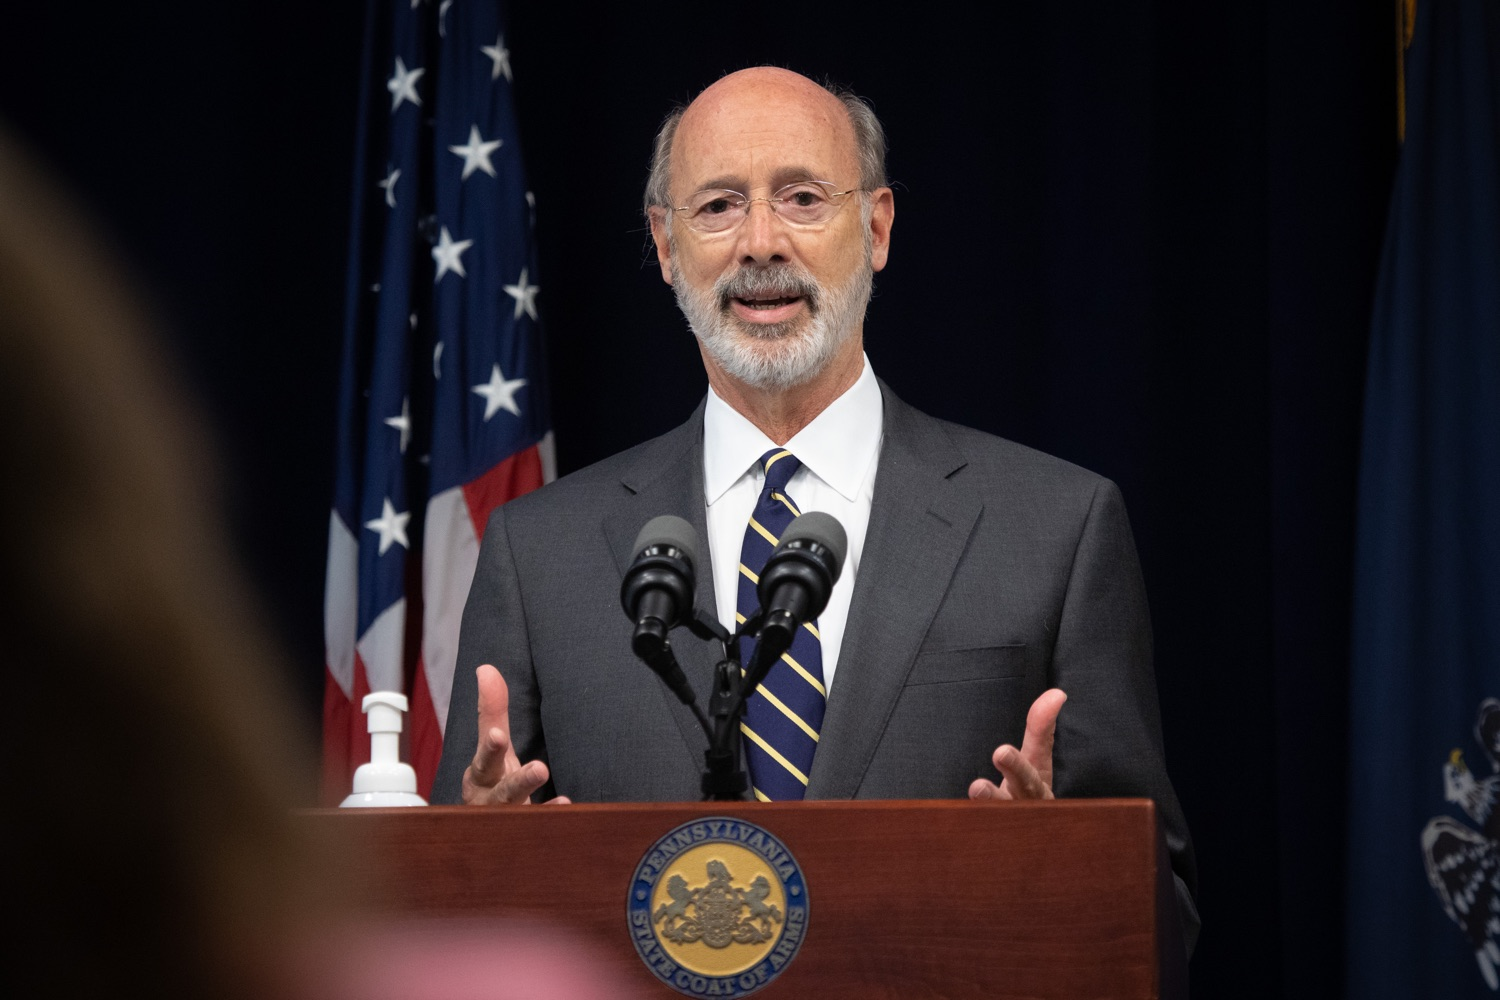 "<a href=""https://filesource.wostreaming.net/commonwealthofpa/photo/18141_gov_sb637_bill_signing_dz_02.jpg"" target=""_blank"">⇣ Download Photo<br></a>Pennsylvania Governor Tom Wolf speaking with the press.  Building on his criminal justice reforms and fulfilling a recommendation to modernize job licensing, Governor Tom Wolf today signed Senate Bill 637, which removes outdated licensing barriers so skilled workers with criminal records can get a second chance and start good careers. The governor has advocated for sweeping changes to the licensing process for years. Harrisburg, PA  July 1, 2020"